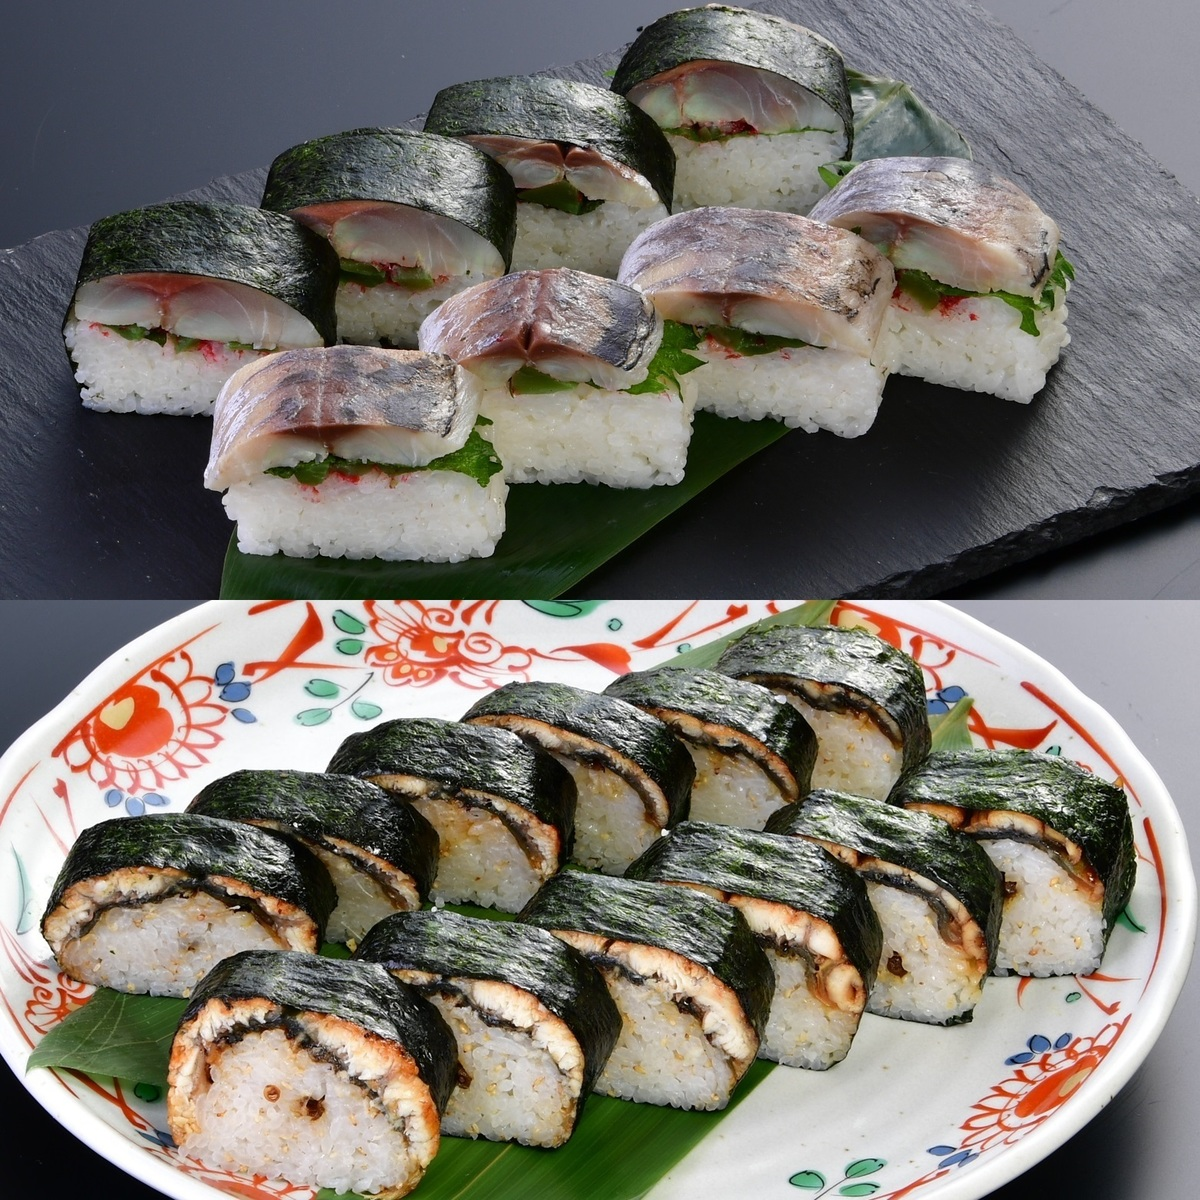 Rolled sushi 1